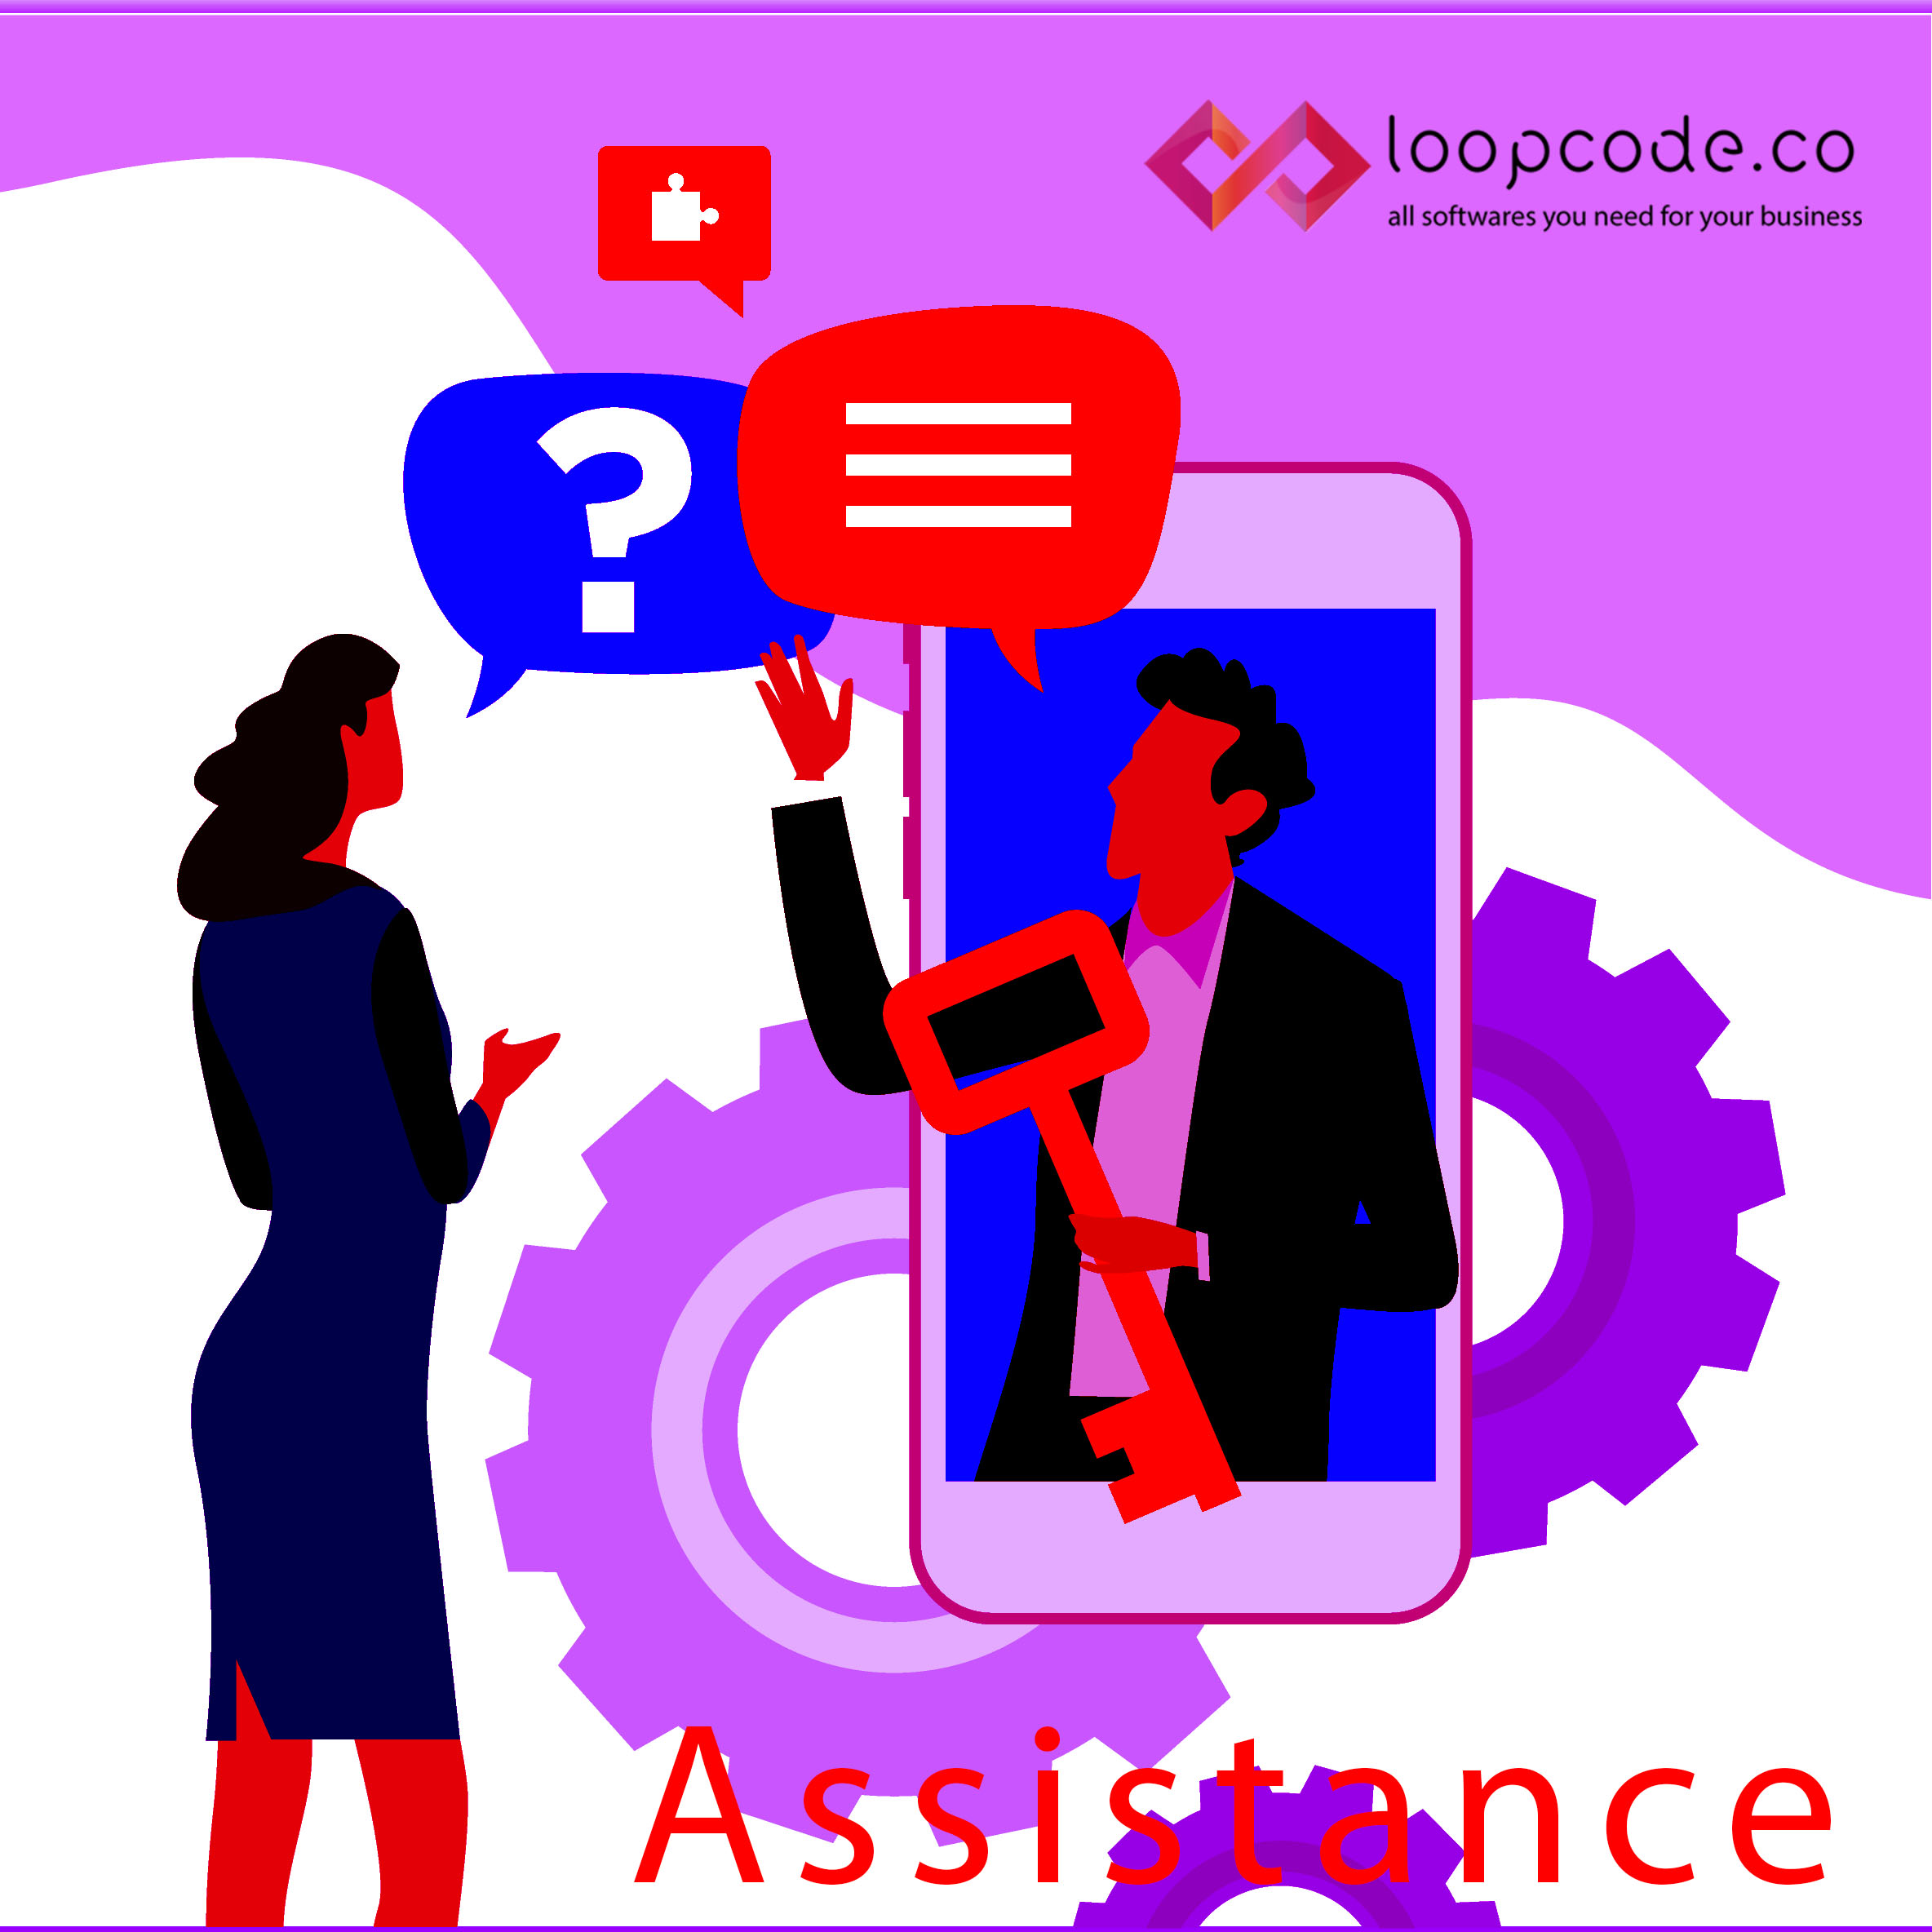 loopcode.co Asistan - Business